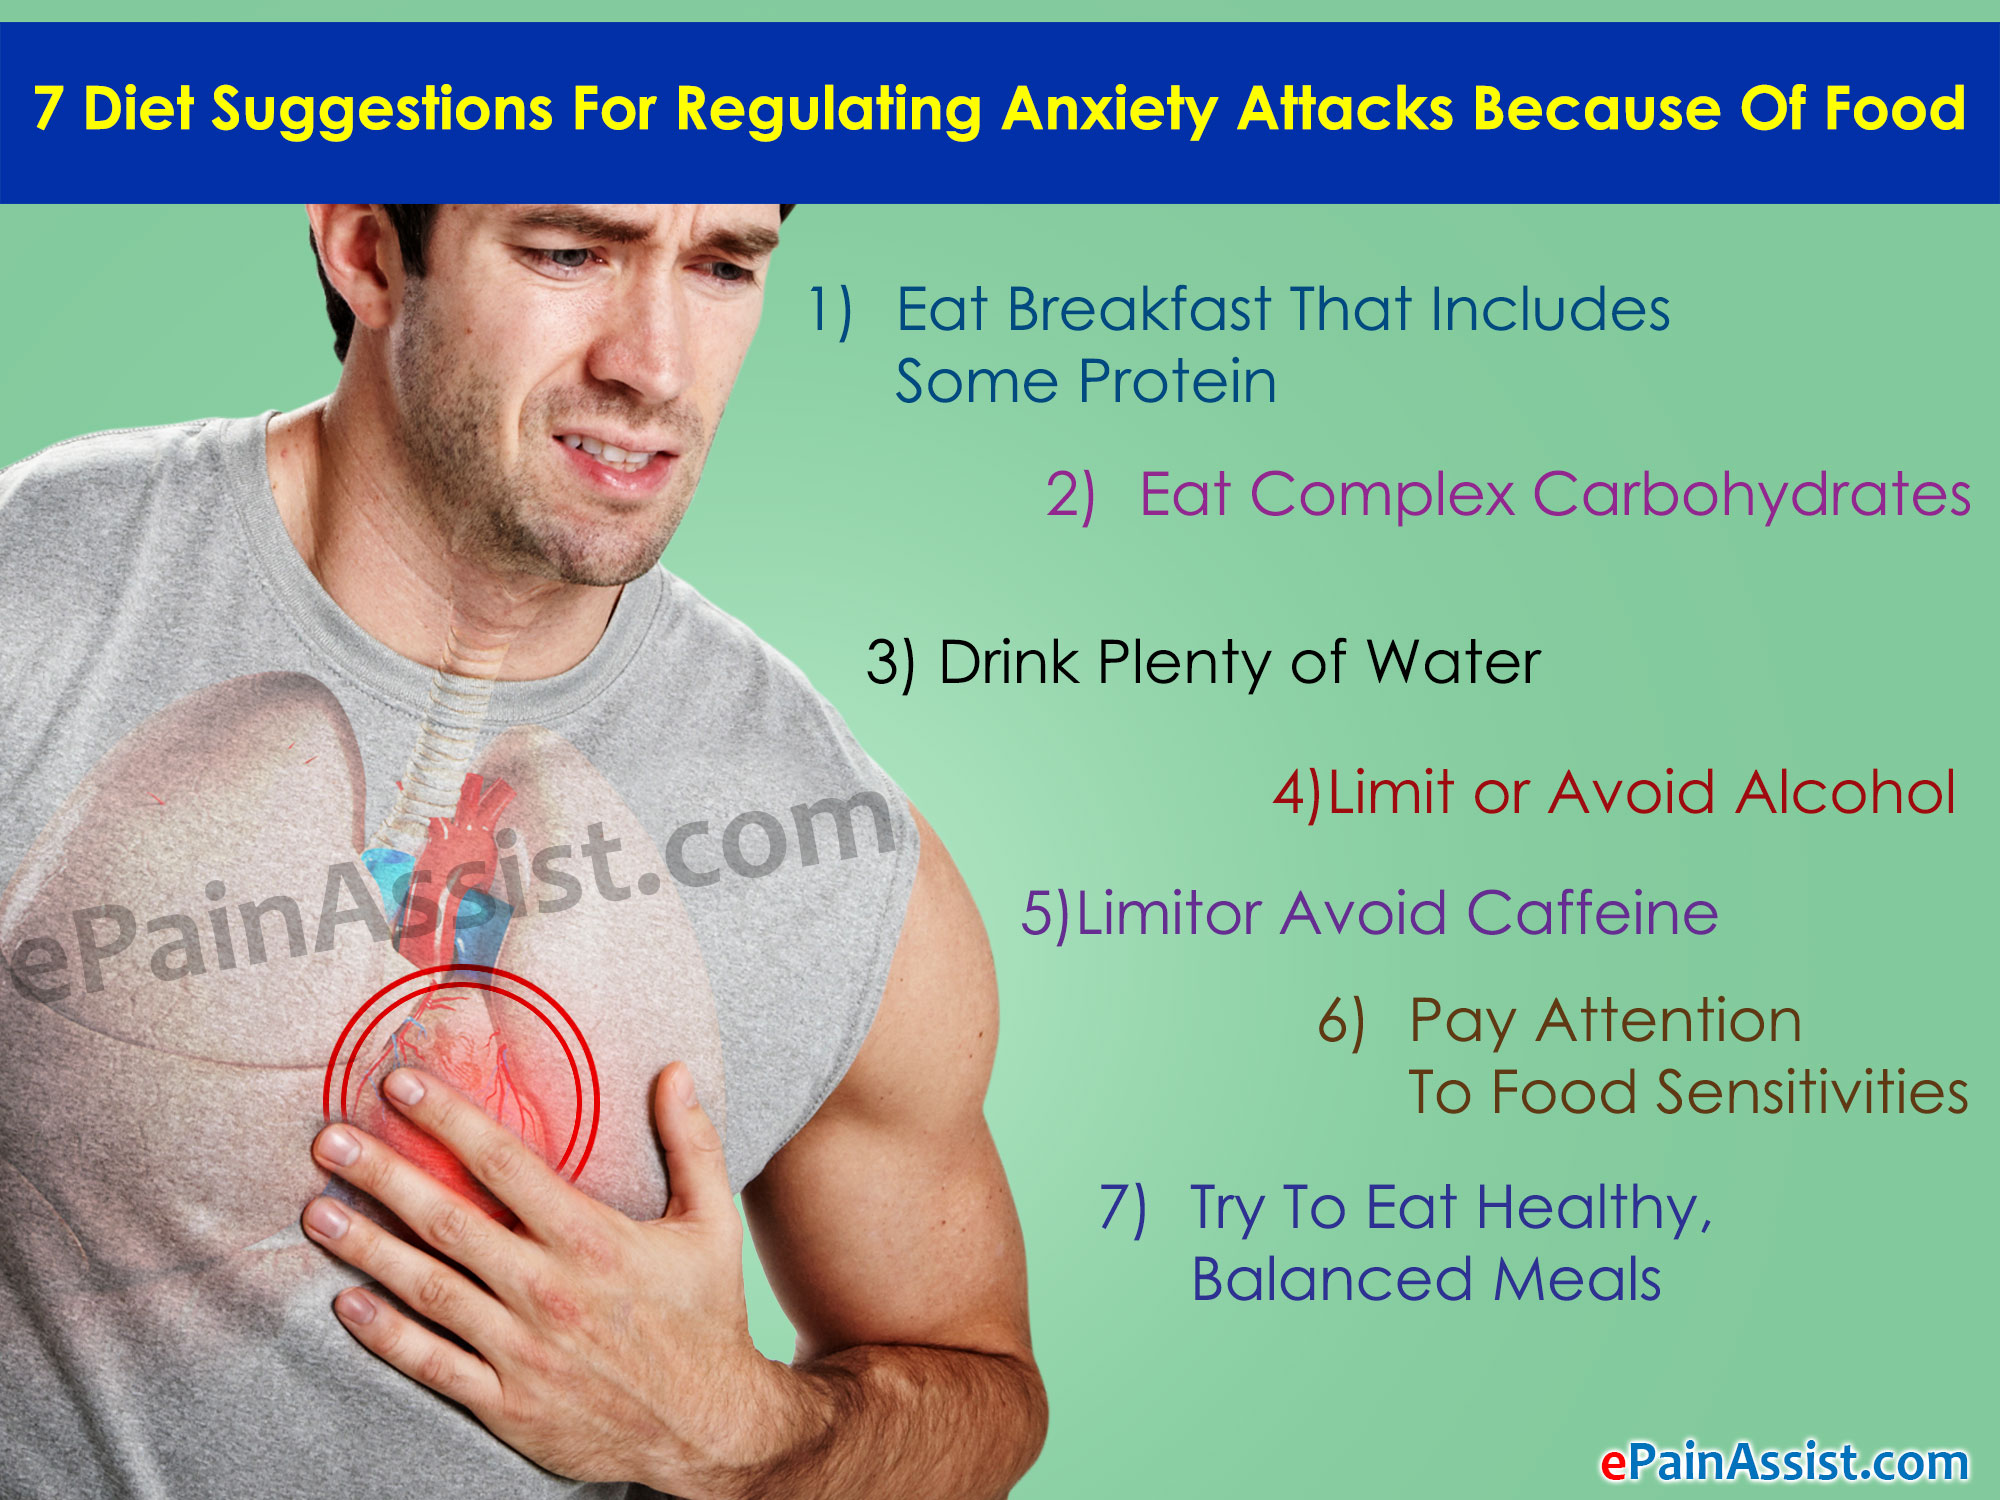 7 Diet Suggestions For Regulating Anxiety Attacks Because Of Food